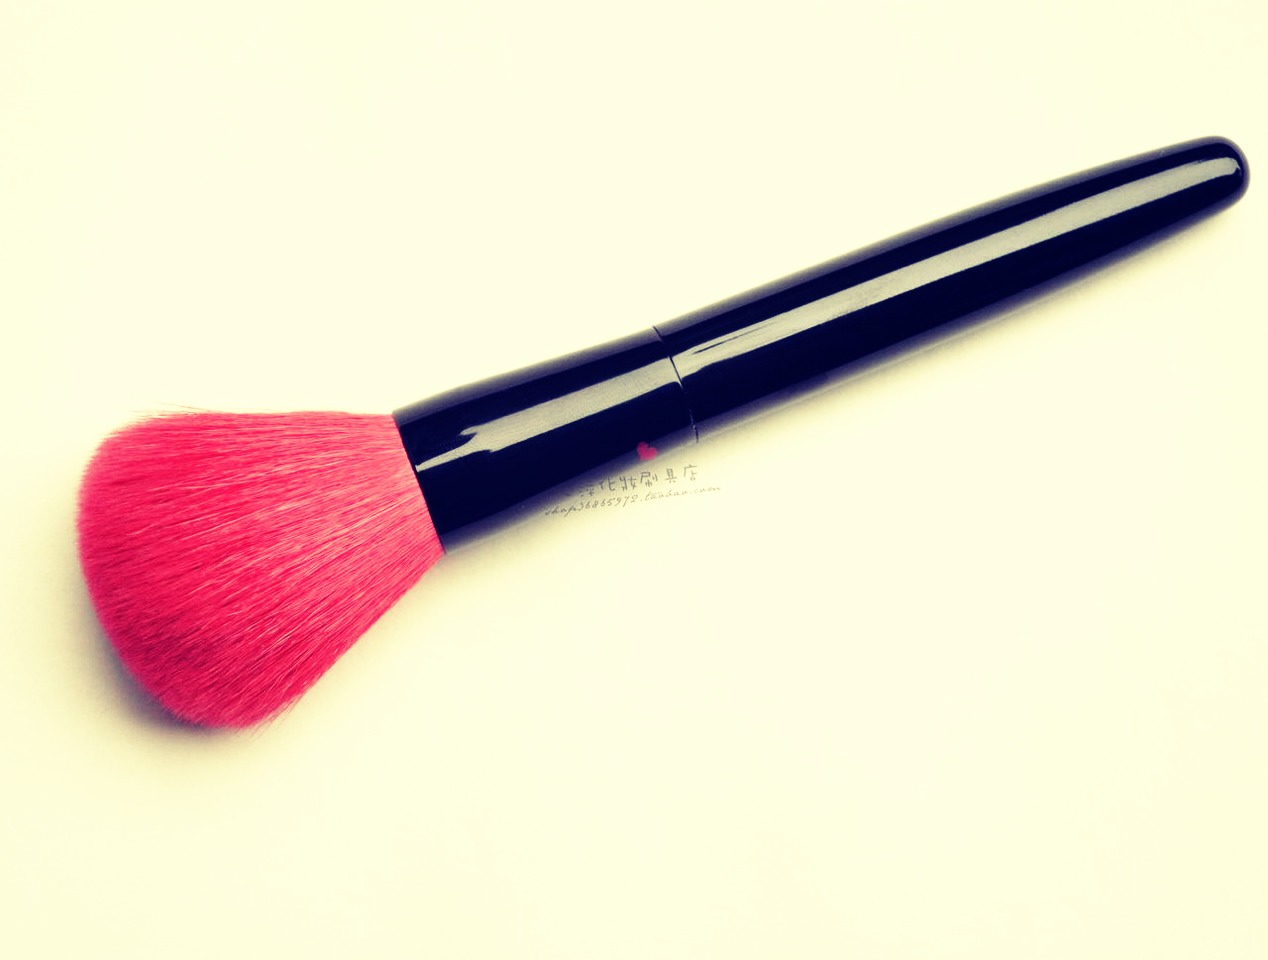 1. To clean makeup brushes🎀👛